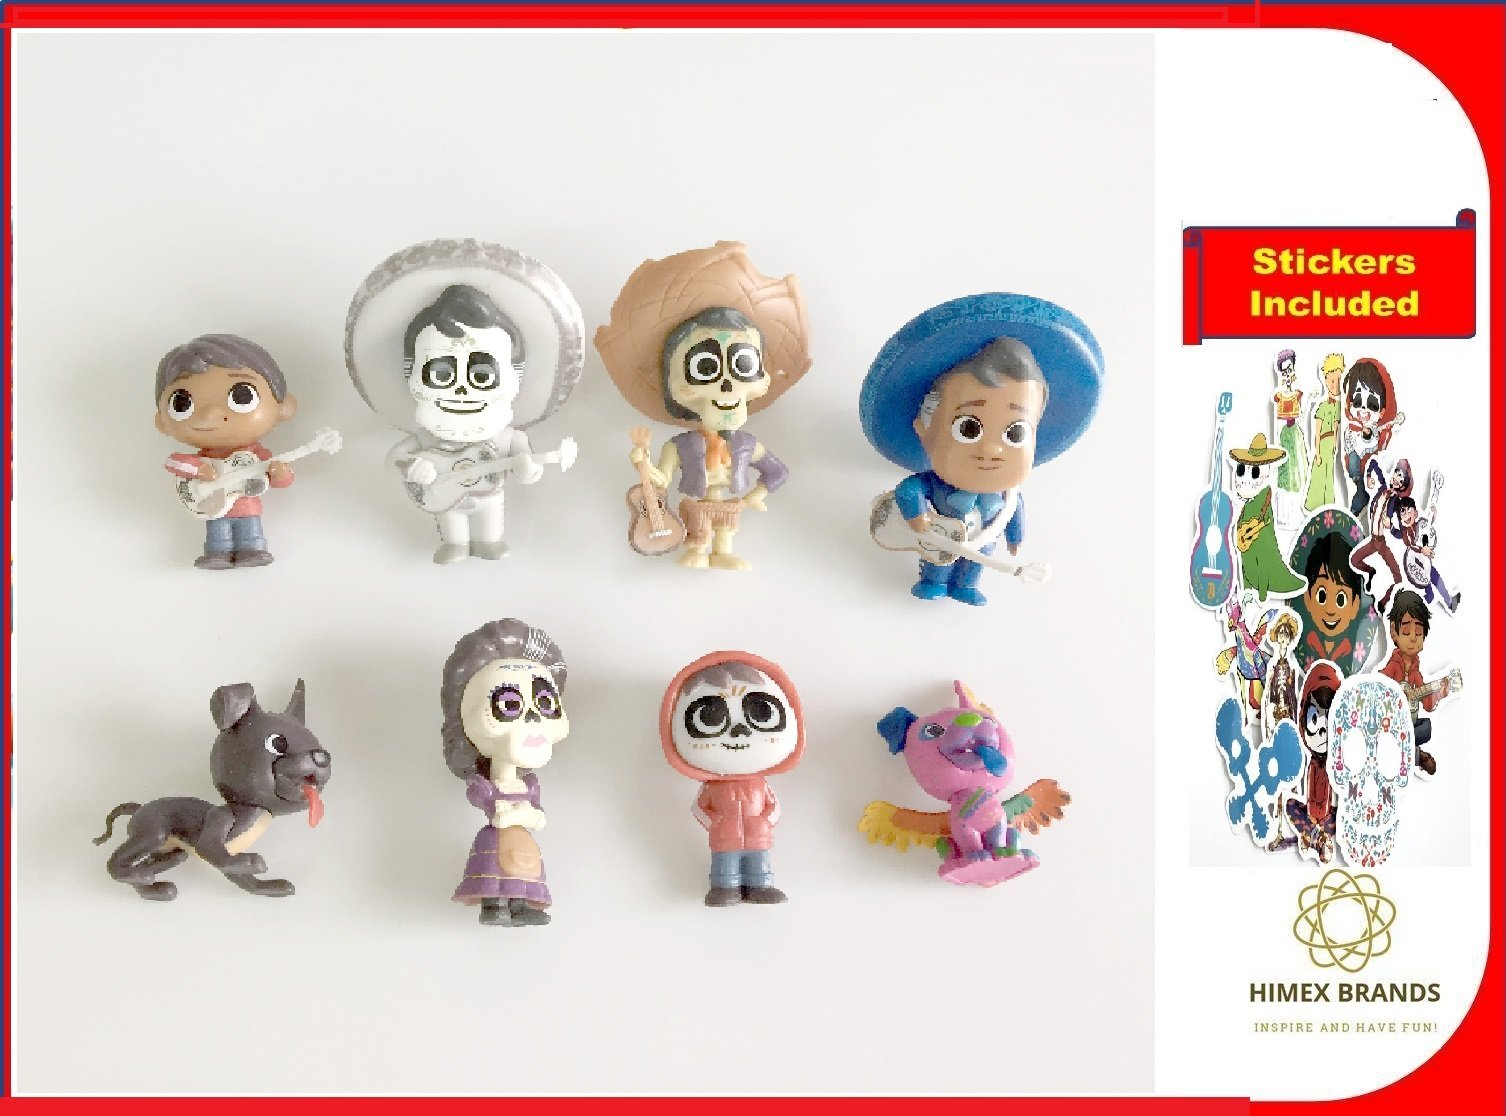 HIMEX BRANDS 8X Coco Cake Topper Figures Toy Set Miguel Hector Imelda Dante Ernesto free stickers included by HIMEX BRANDS